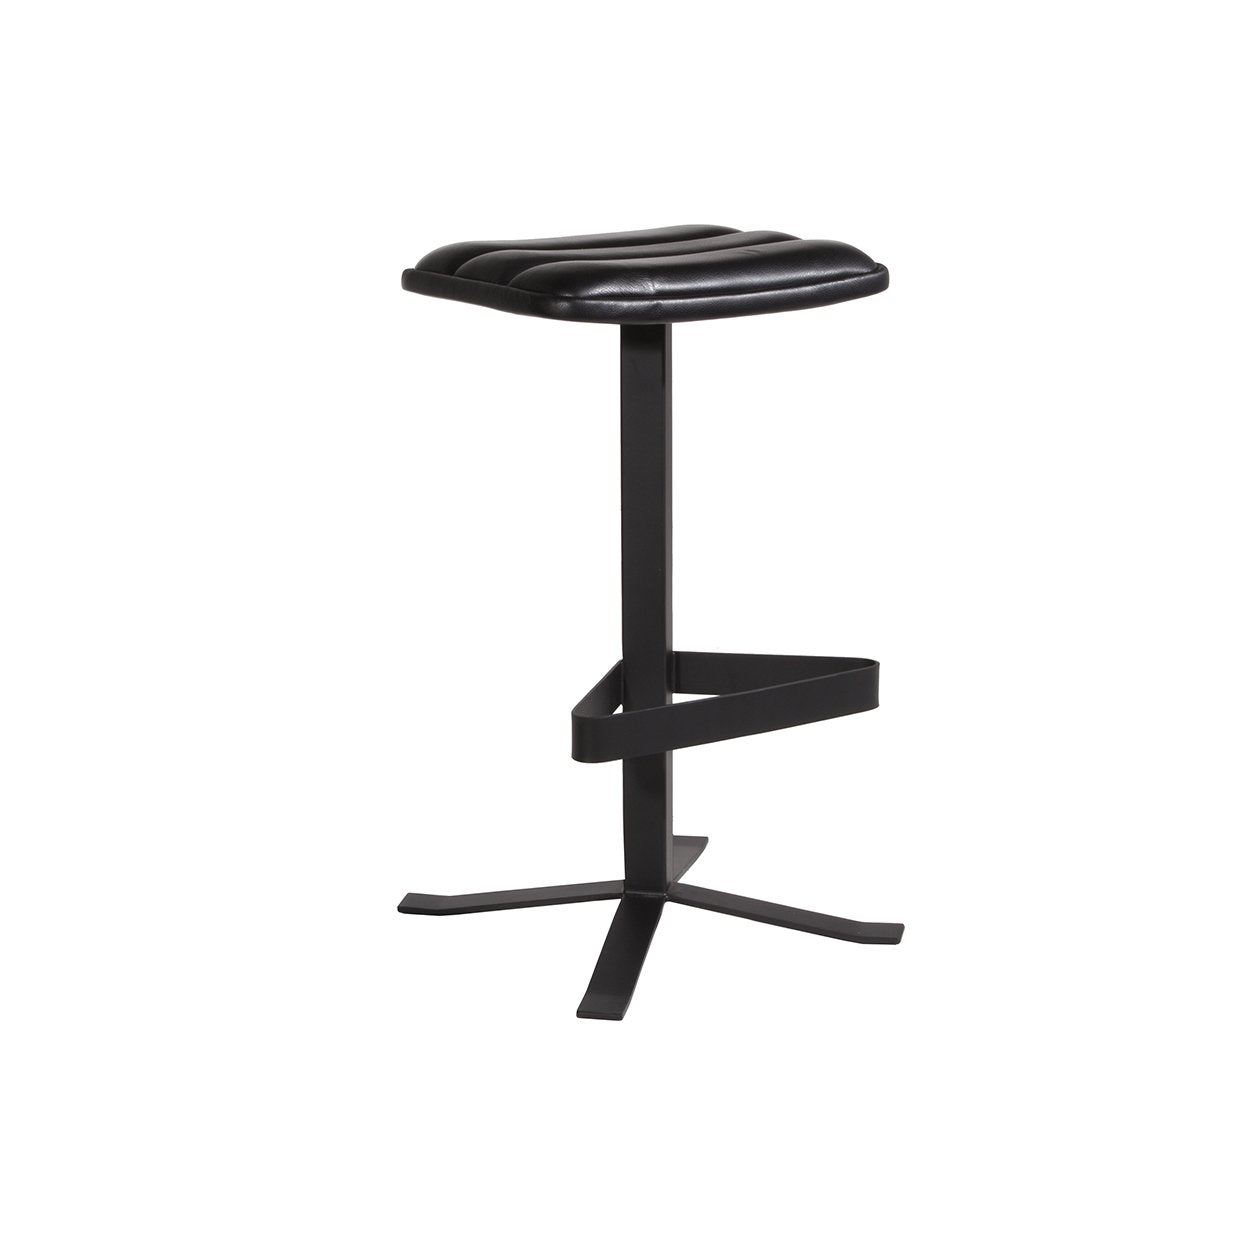 [FEB1249BLACK] Sean Dix Ronin Bar Stool